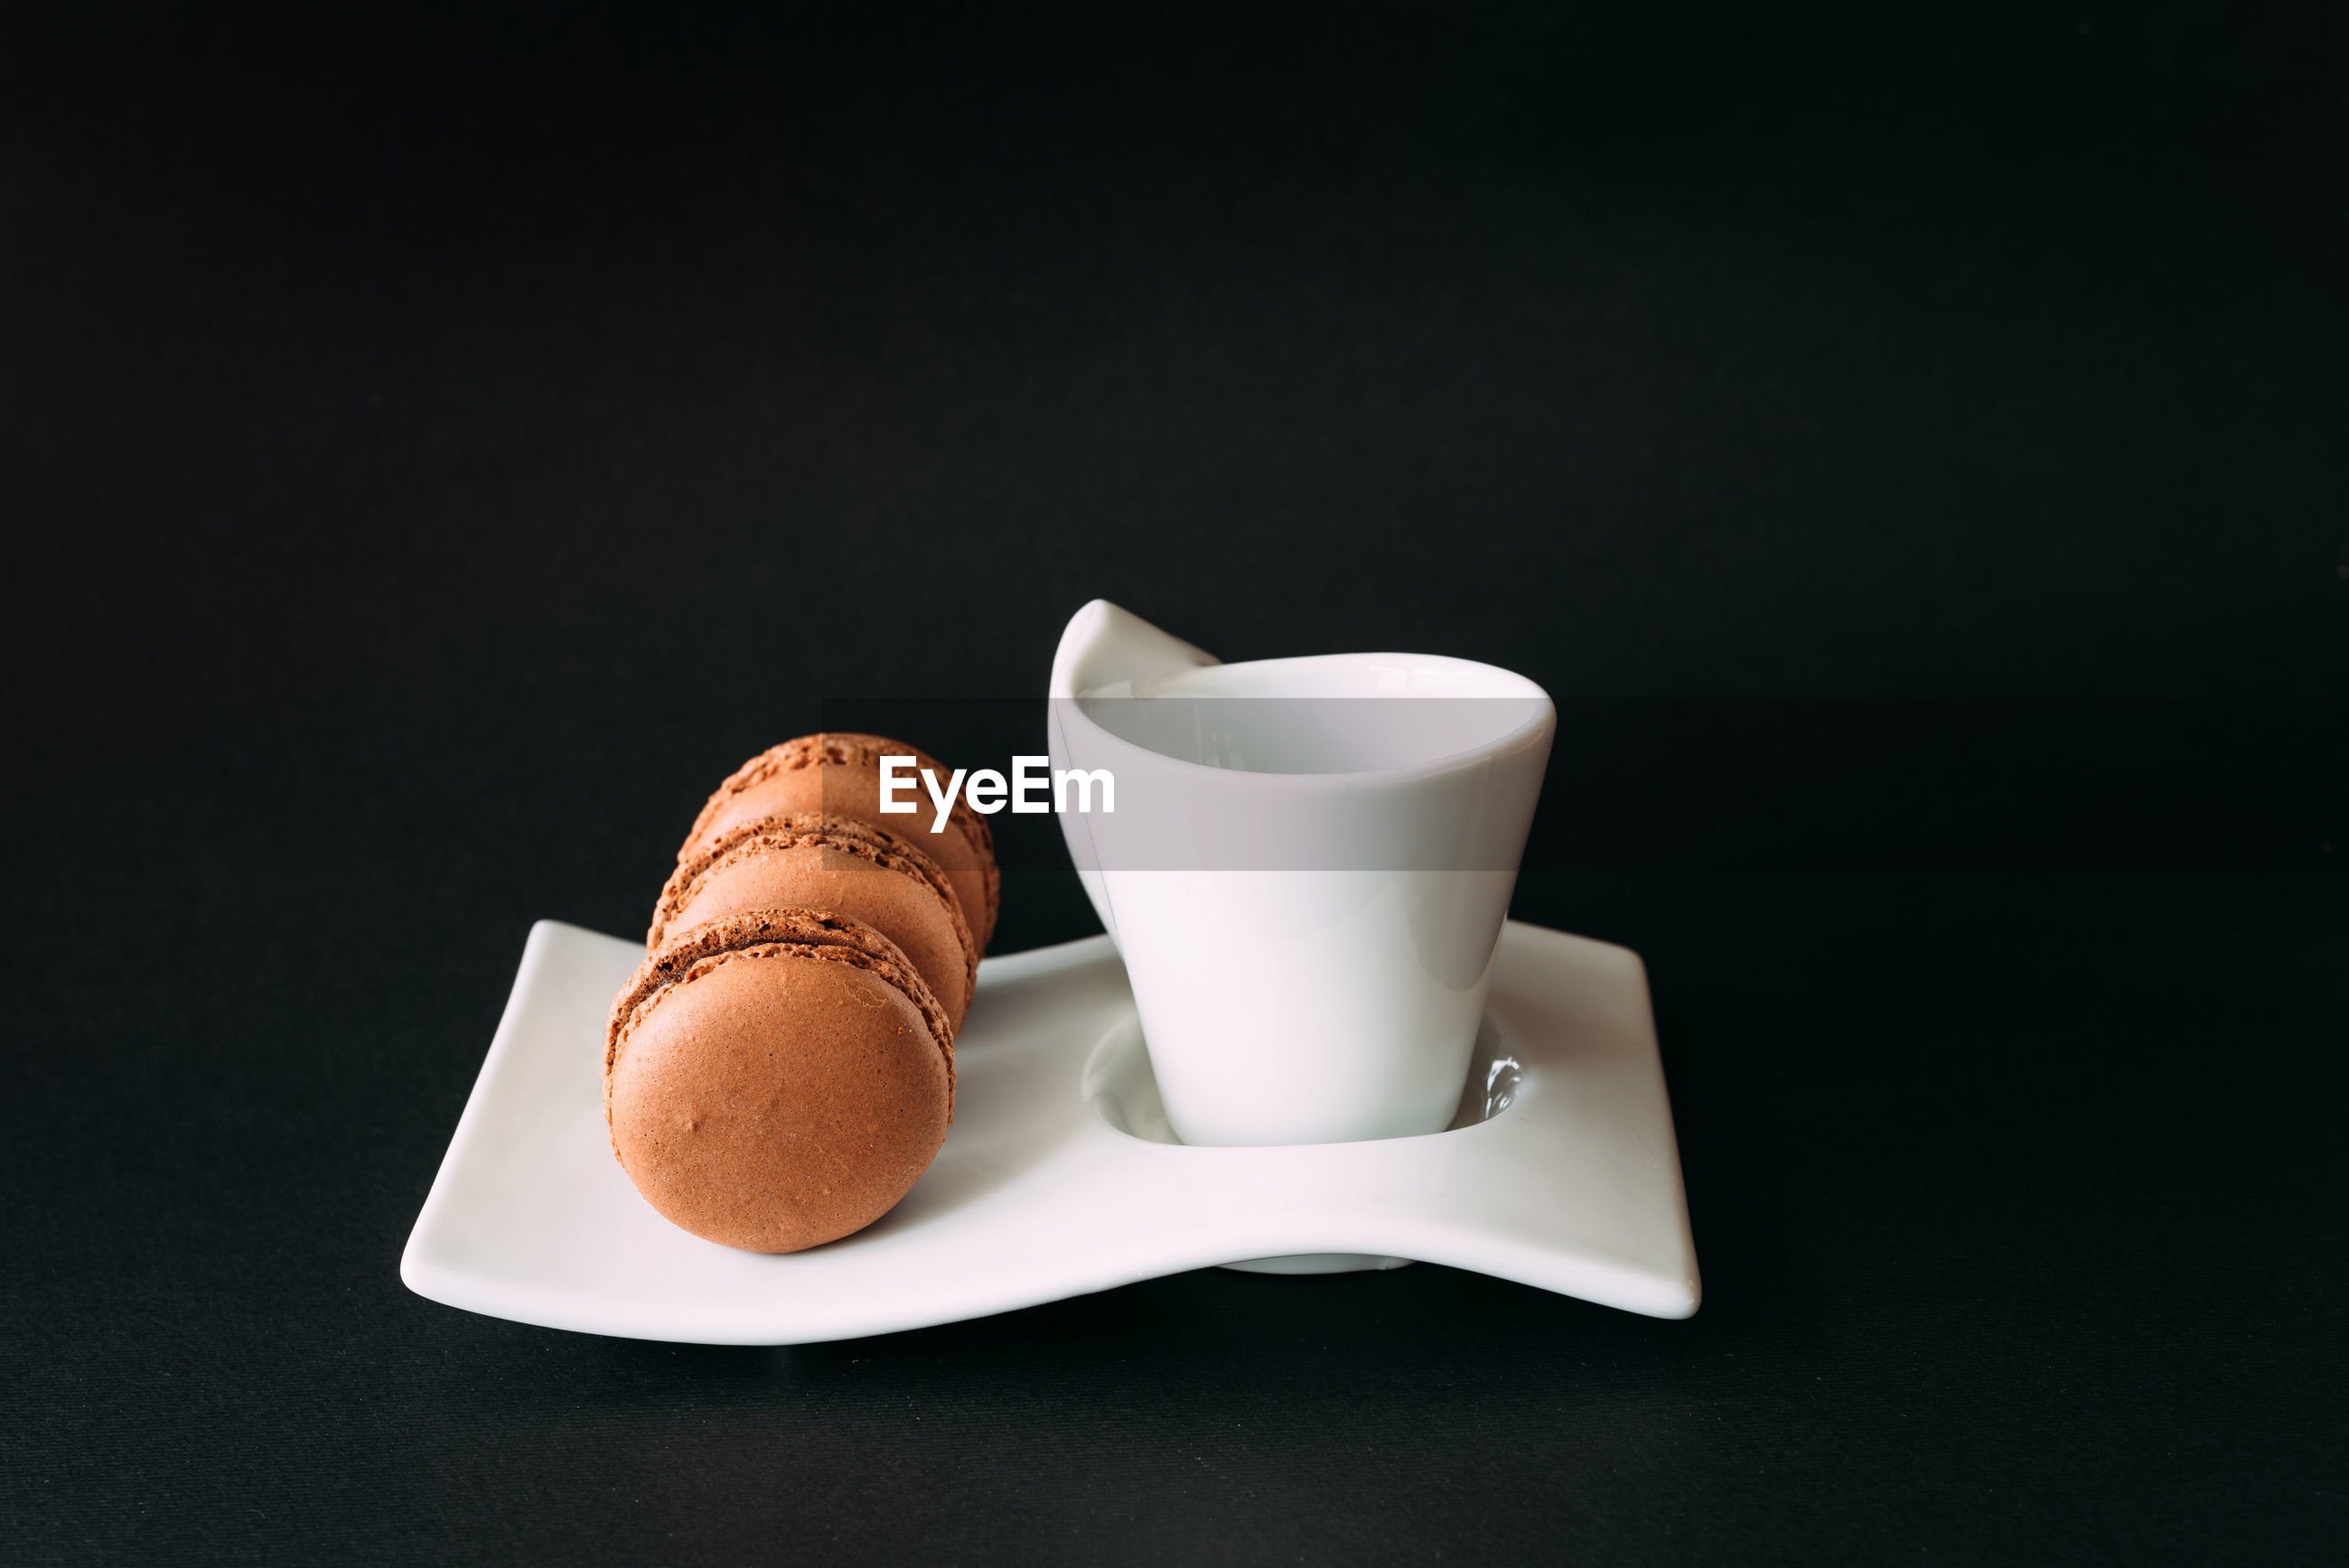 Close-up of coffee cup and macaroons over black background